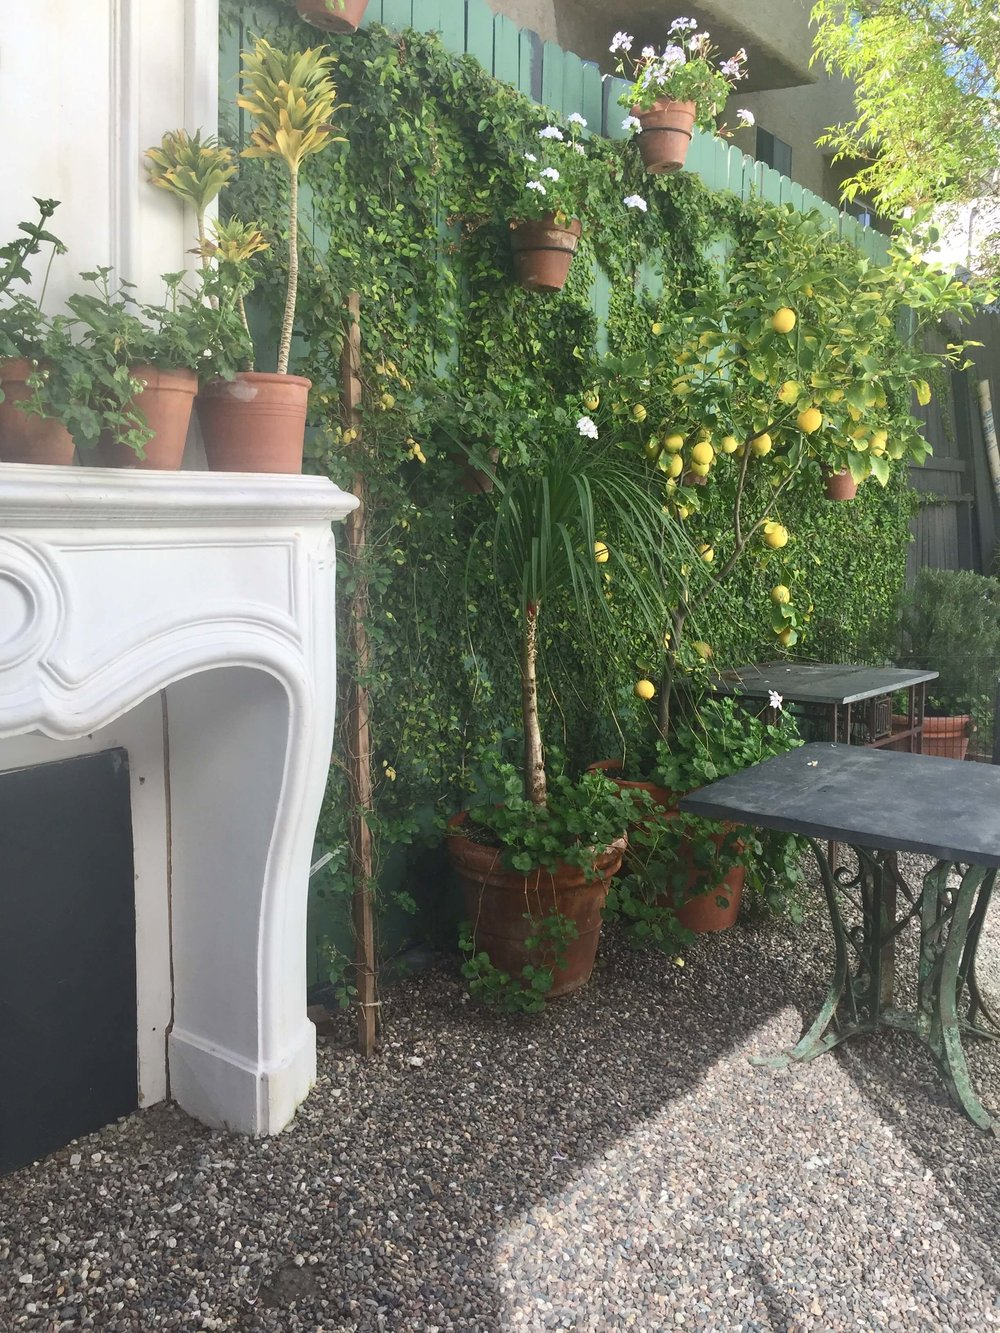 White marble fireplace mantel with lemon trees in pots in the garden at Hollywood At Home, Los Angeles home furnishings shop #lemontree #whitemarblemantel